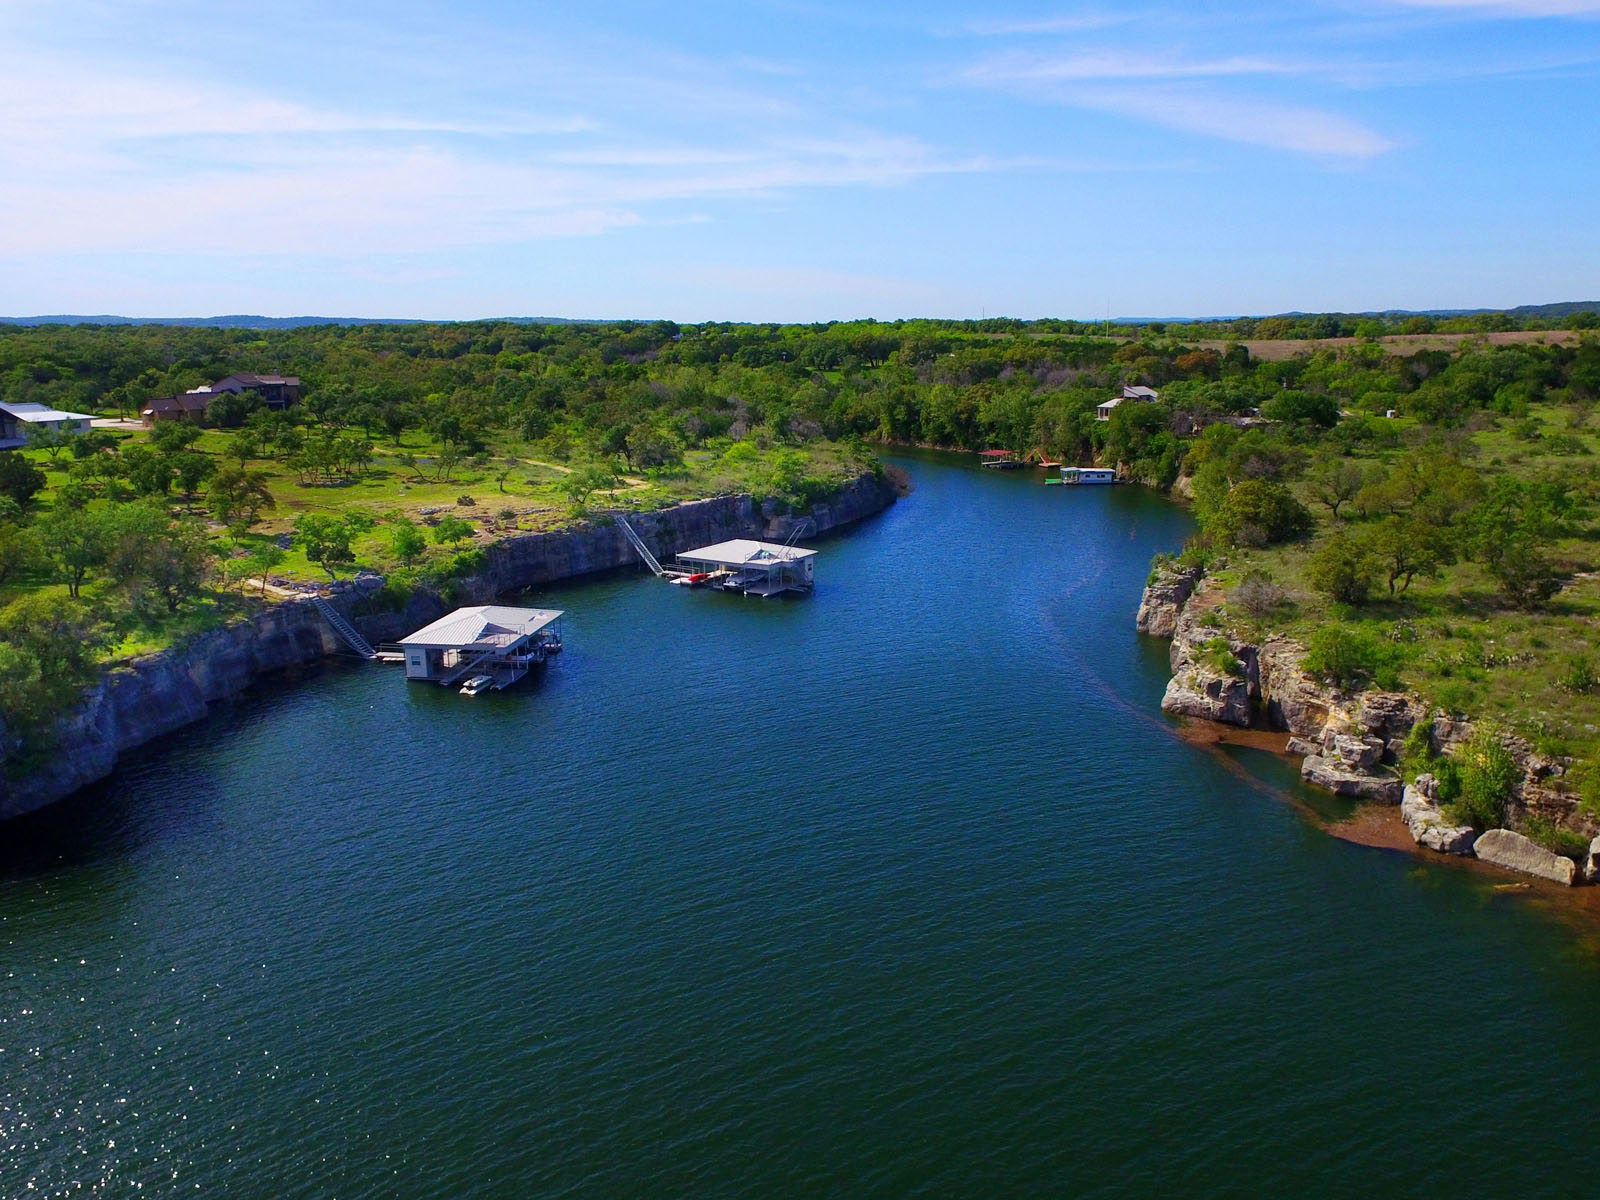 Land for Sale at 22800 Mary Nell Ln, Spicewood Spicewood, Texas, 78669 United States